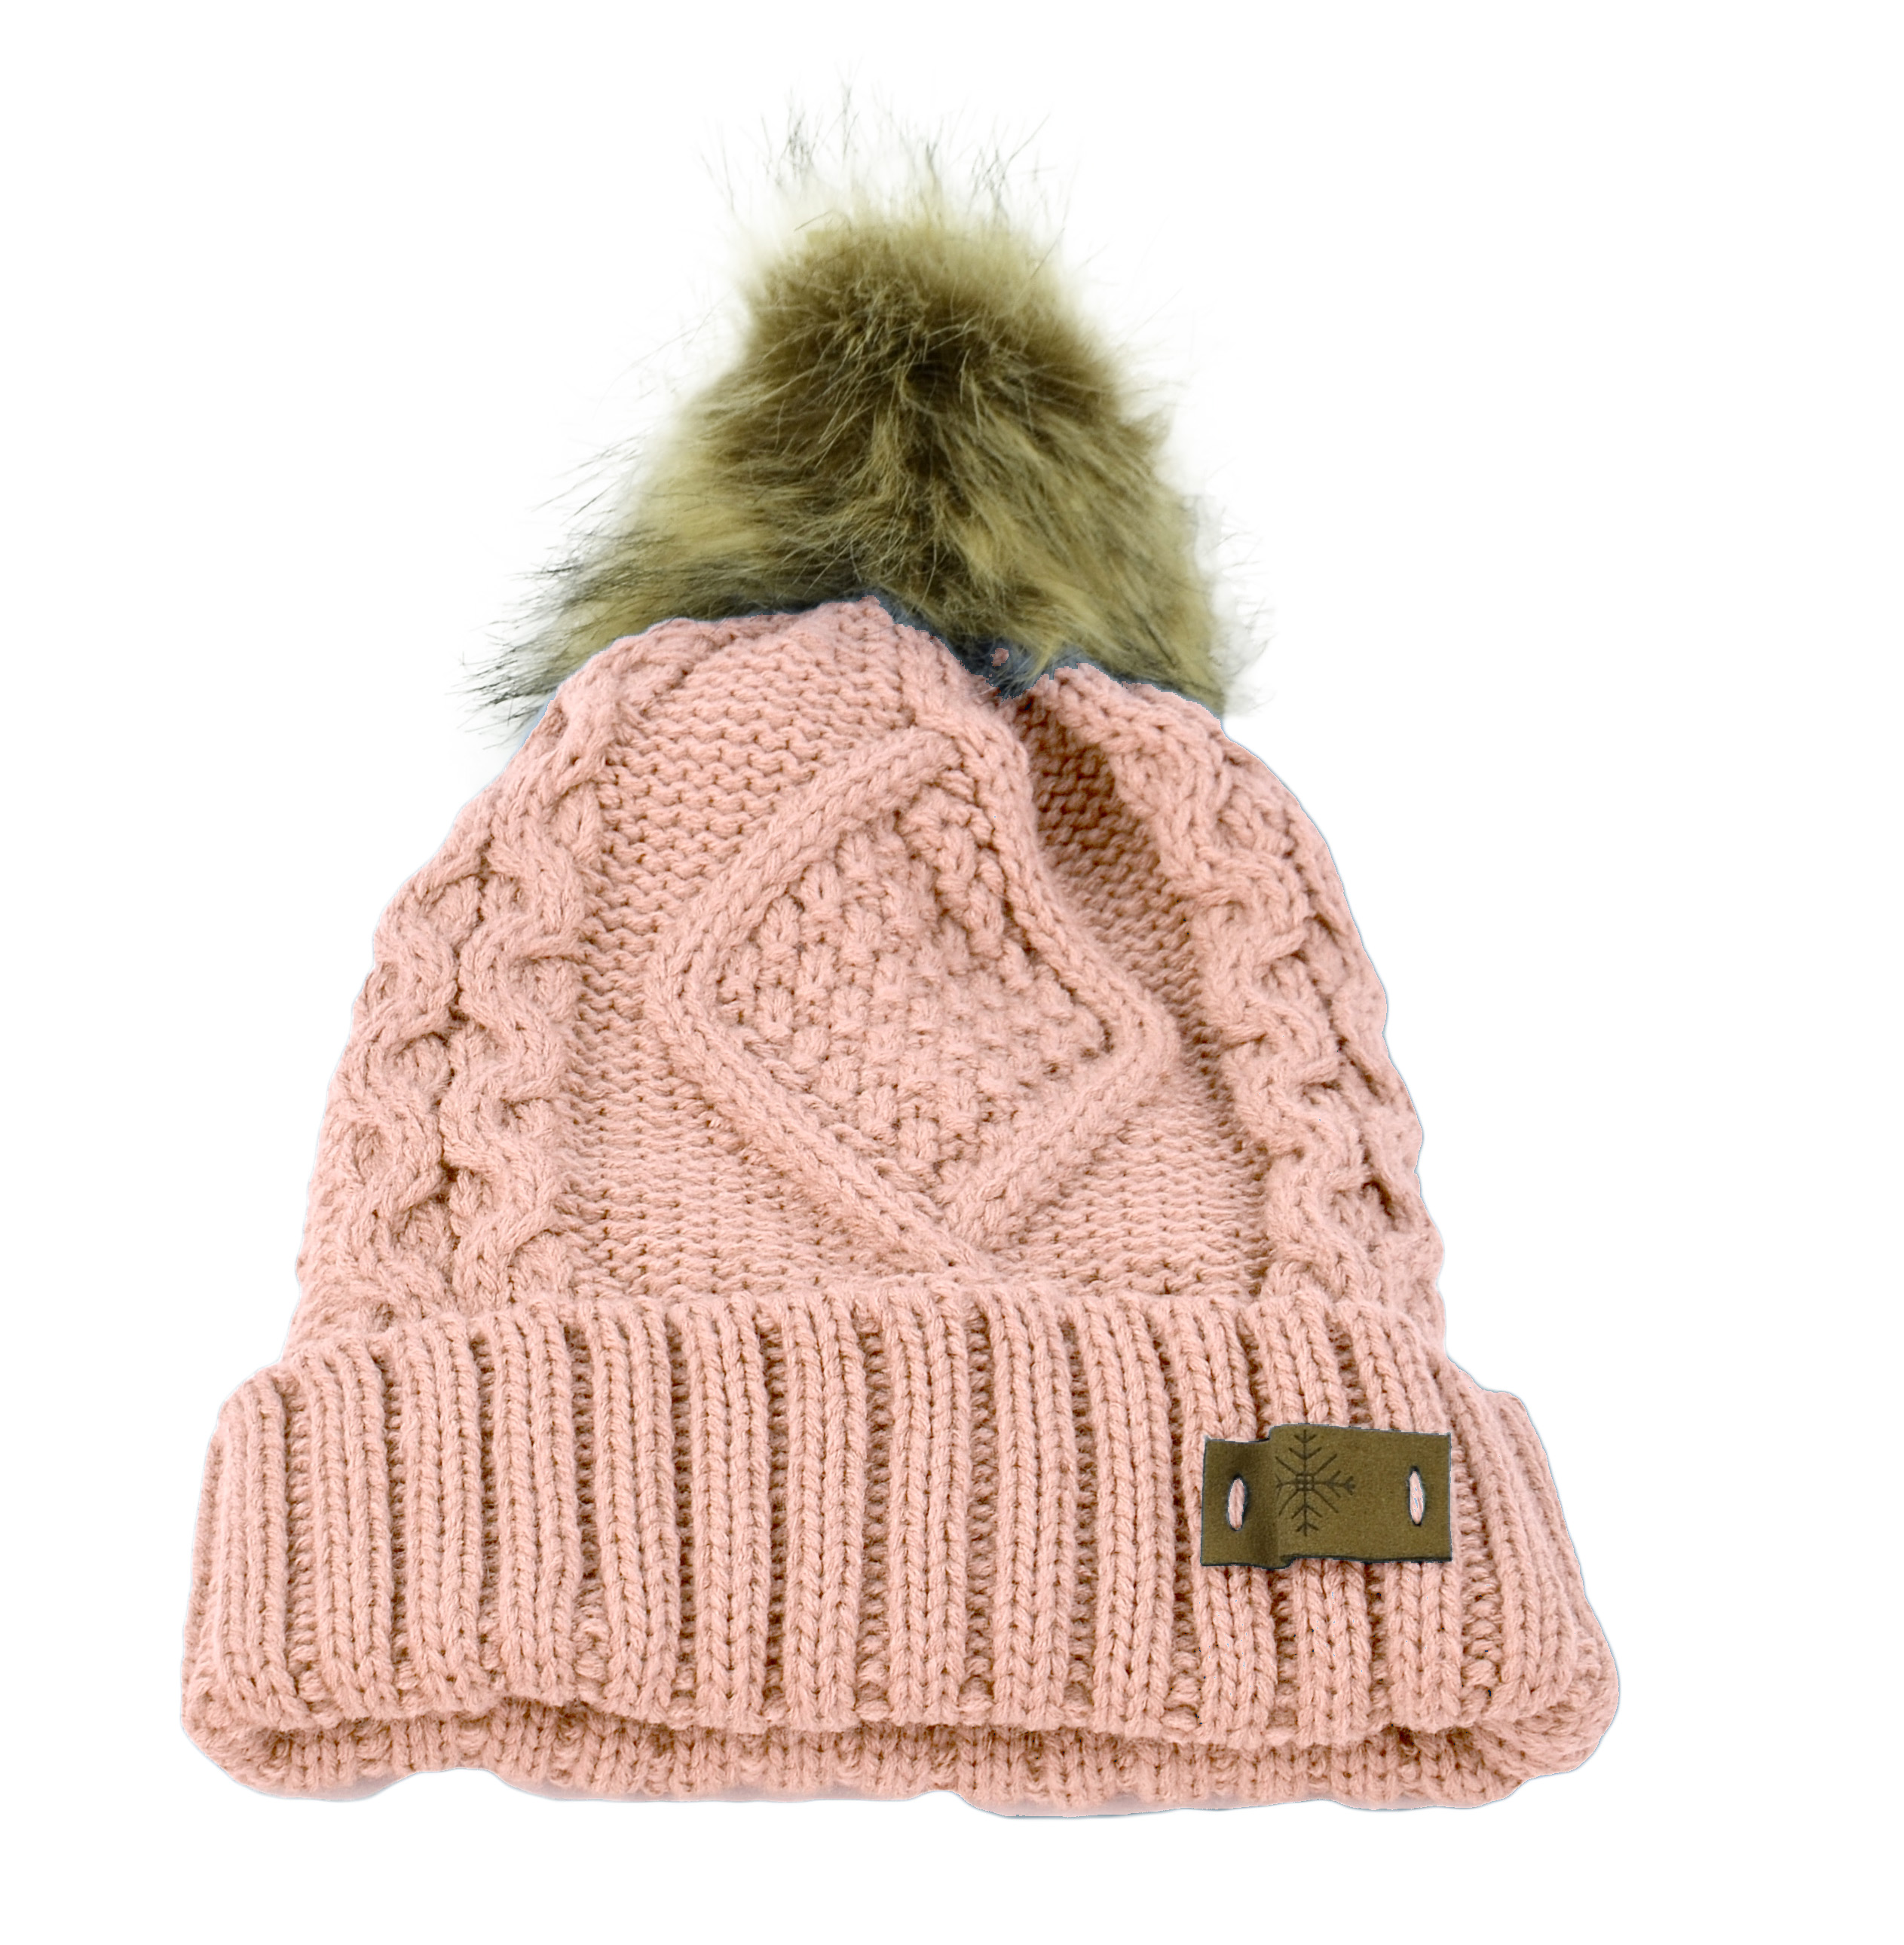 2cecdb7af4b Belle Donne - Women s Winter Fleece Lined Cable Knitted Pom Pom Beanie Hat  - INDI PINK